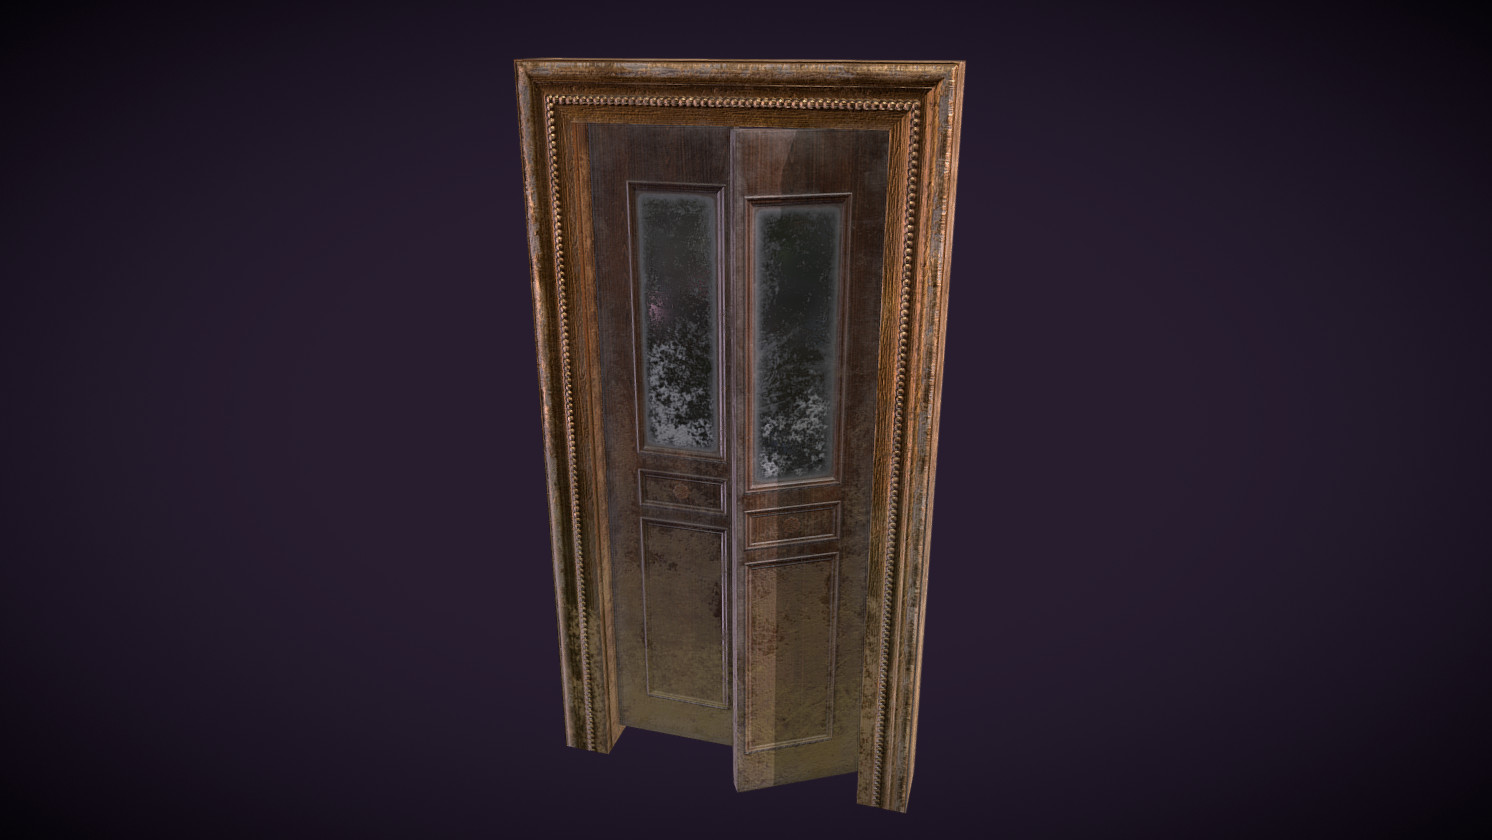 Weathered Low Poly Door and Frame